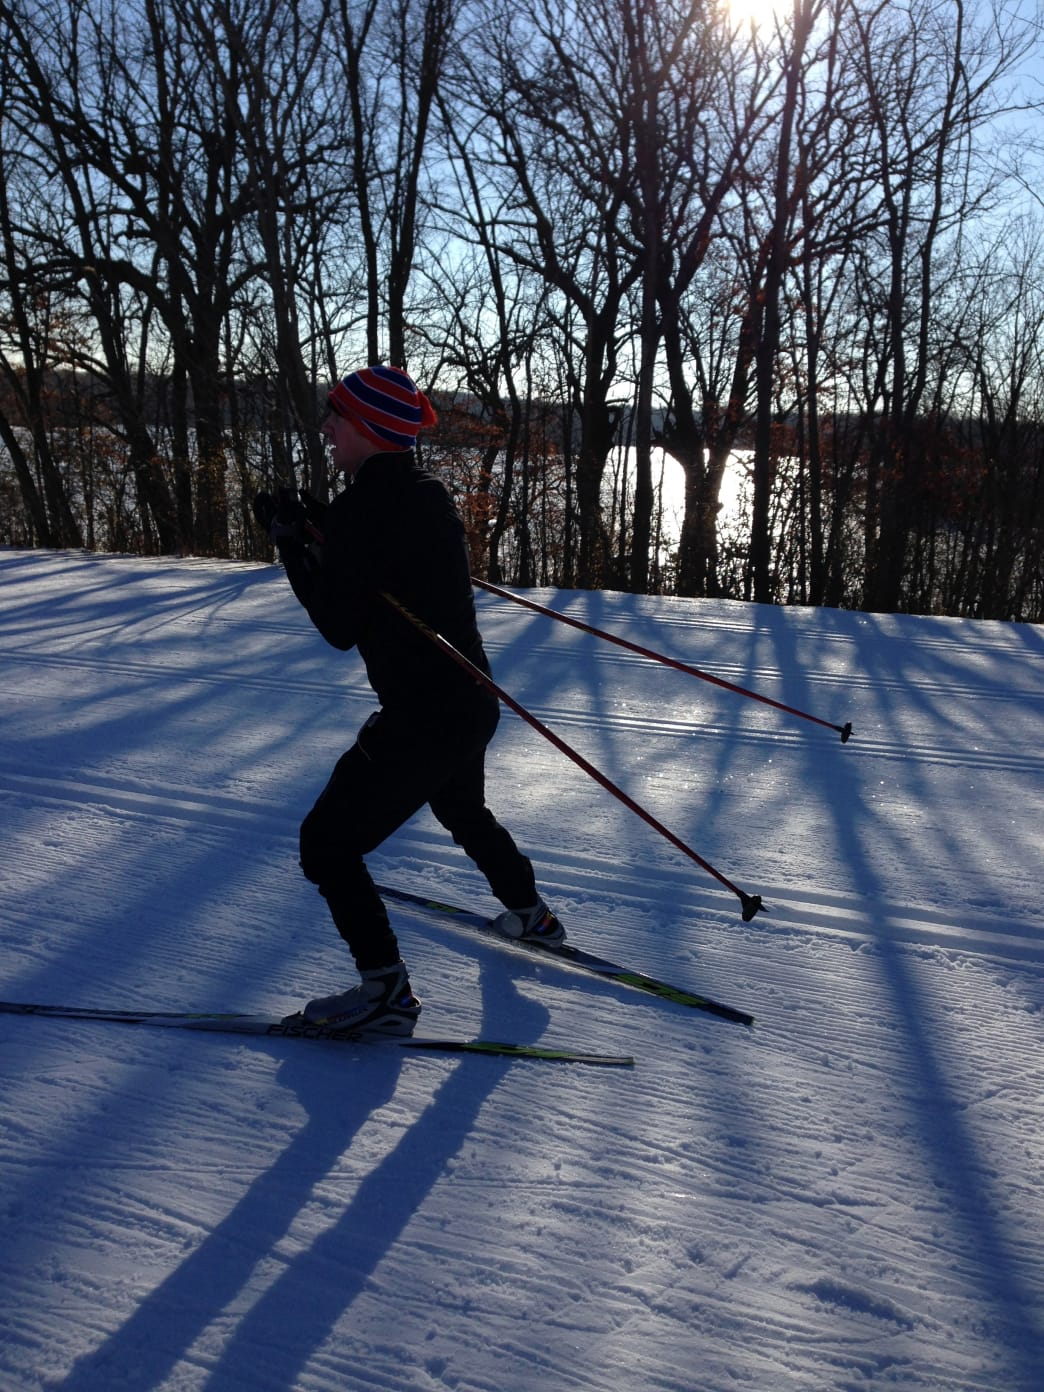 Hyland Lake Park Reserve features snowmaking to allow skiing when the natural stuff isn't around.